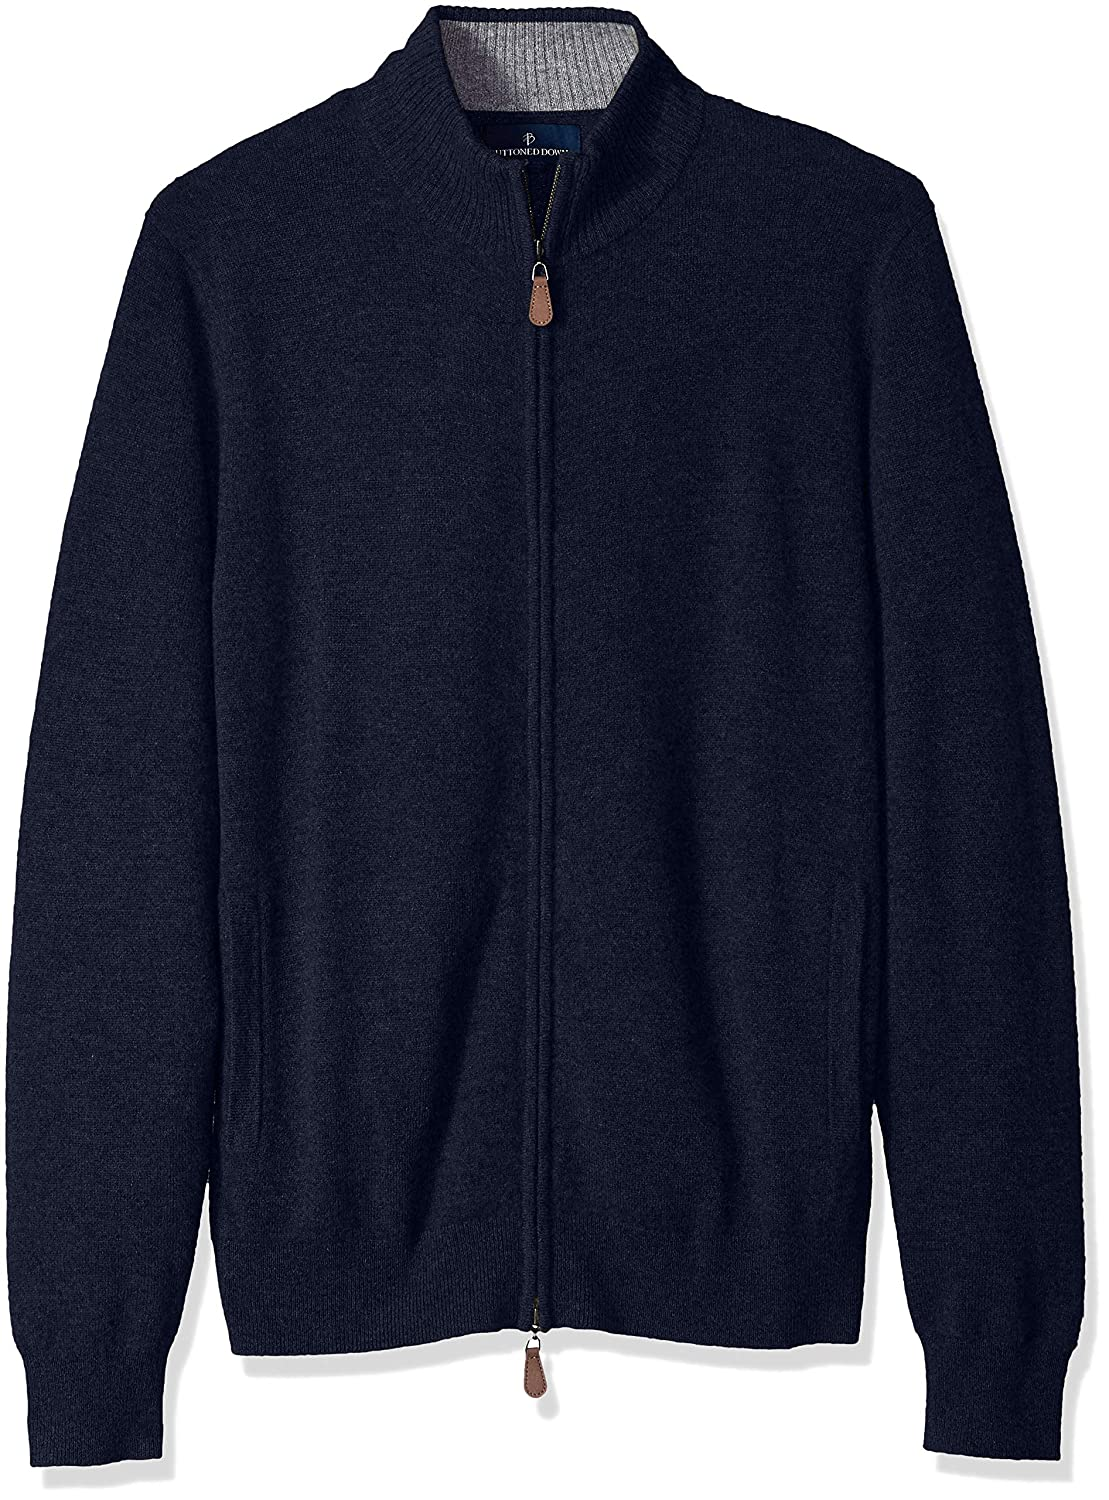 BUTTONED DOWN Men's 100% Premium Cashmere Full-Zip Sweater MBD35004